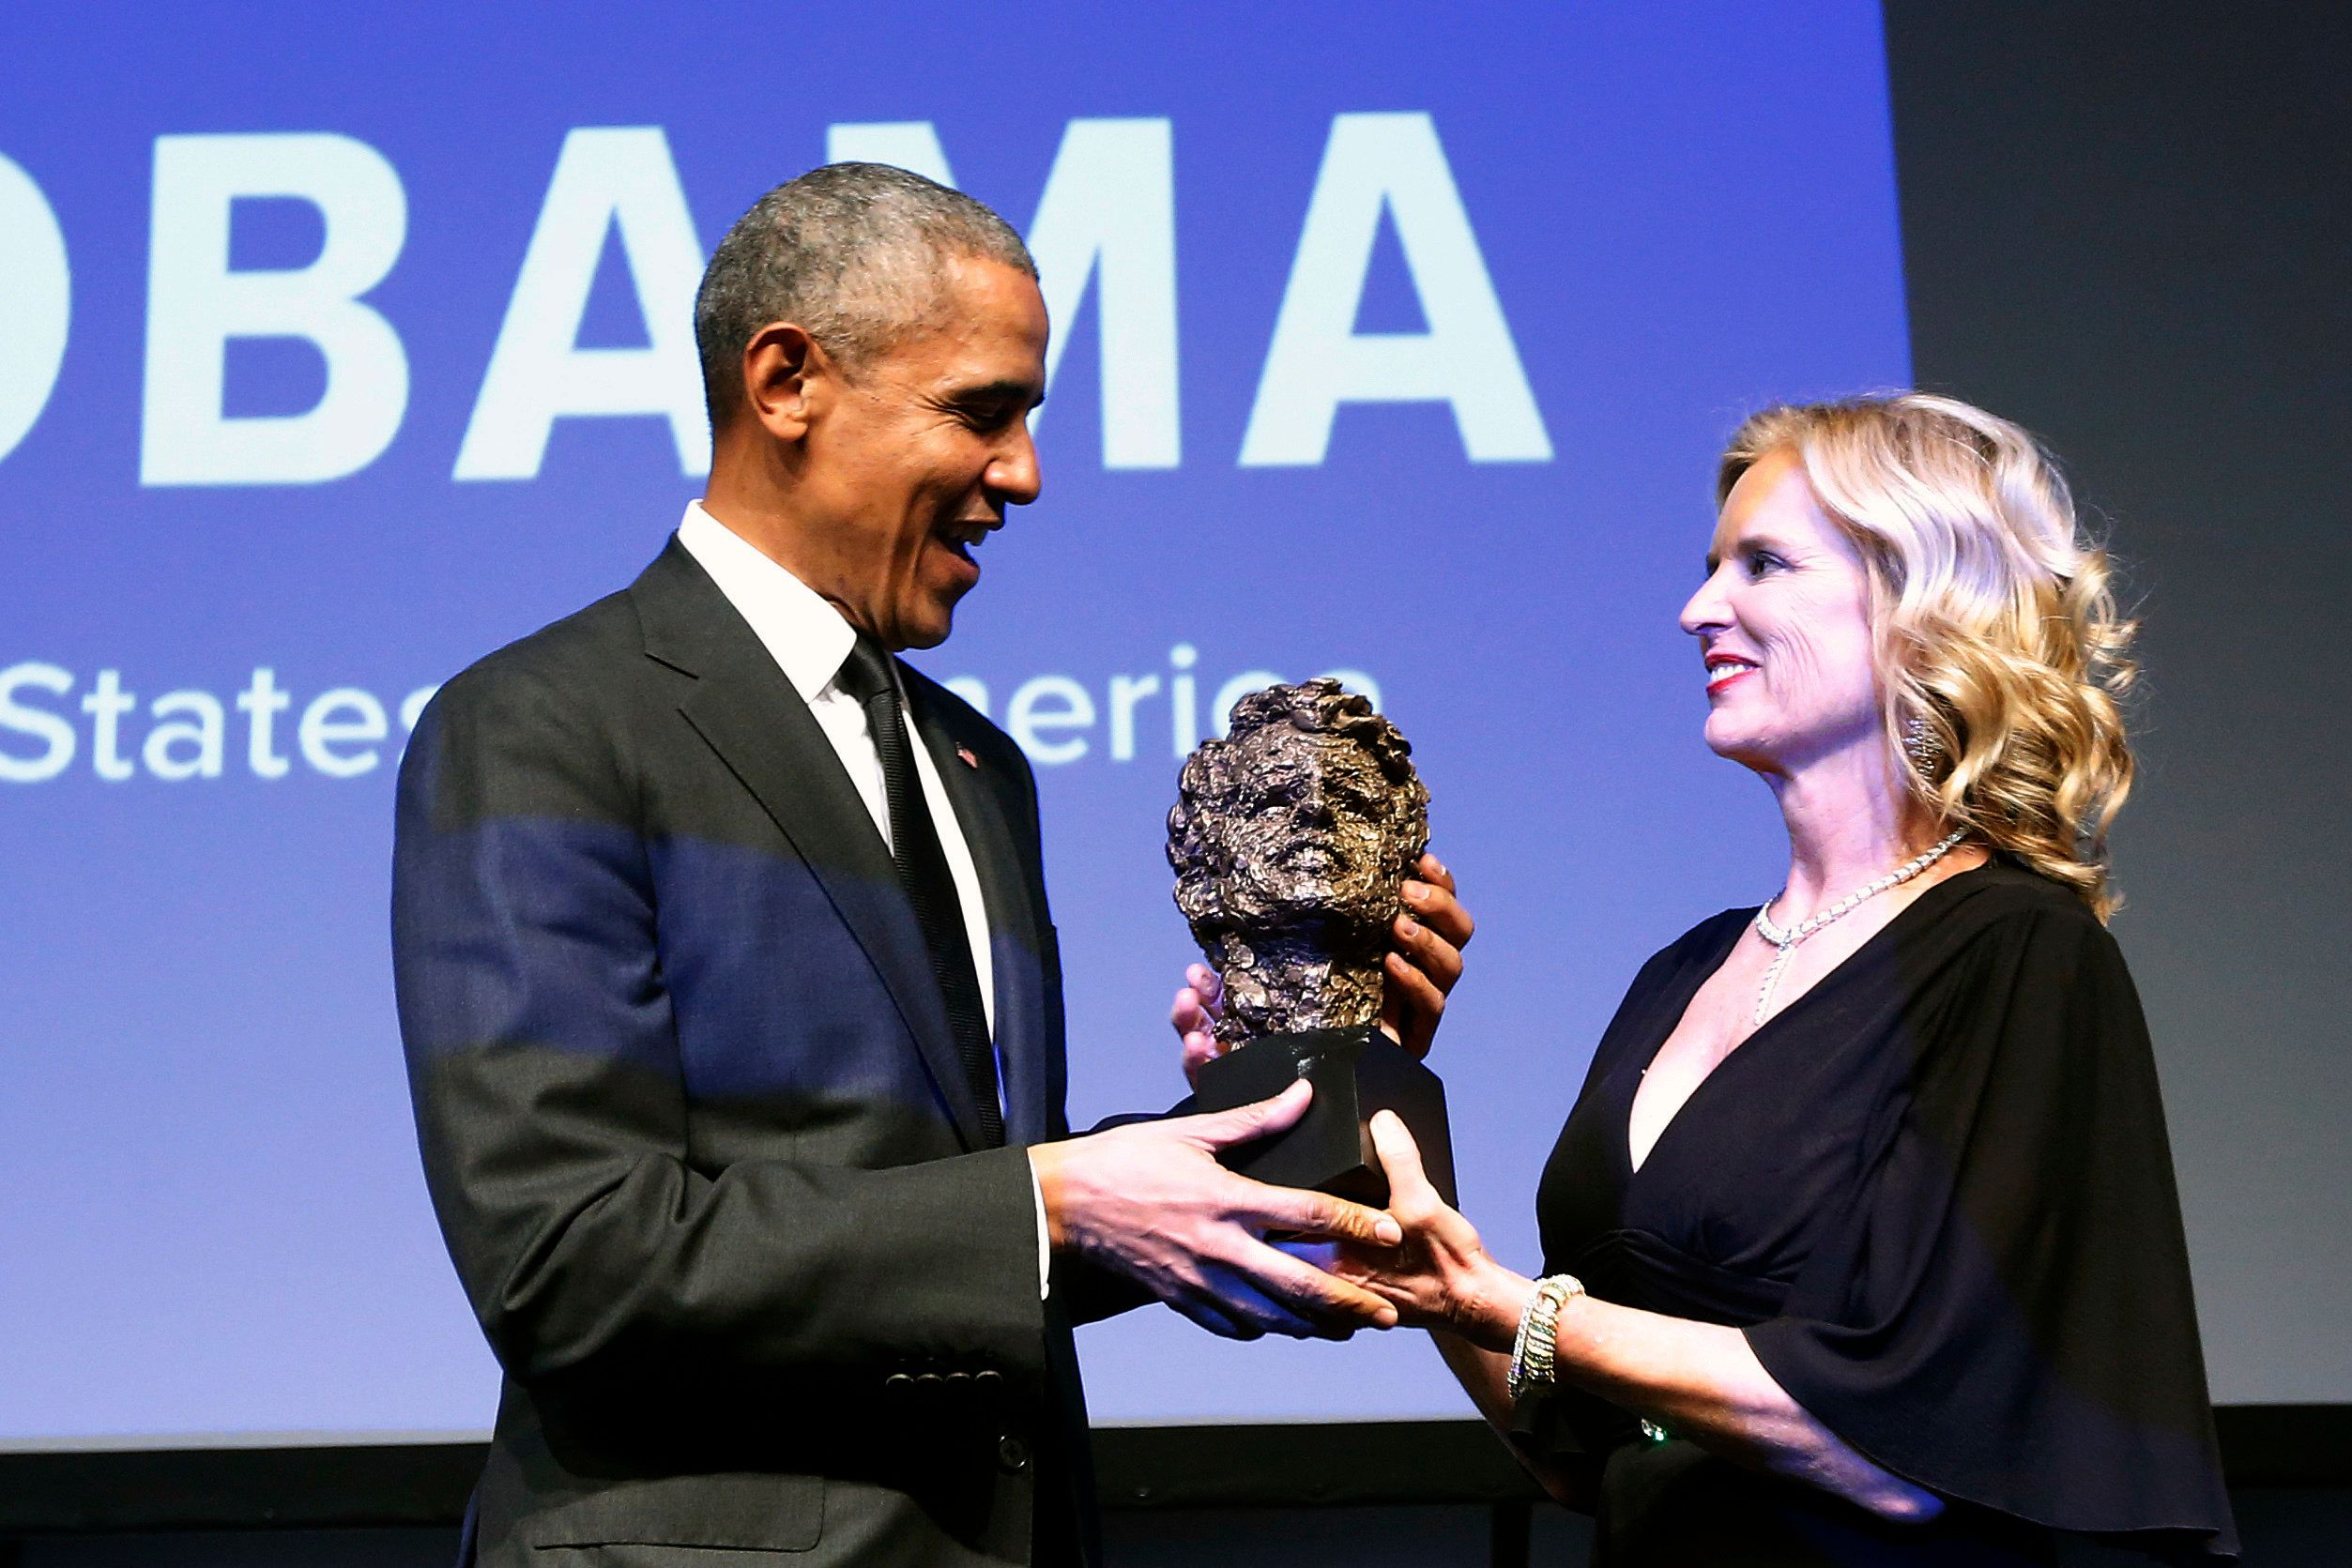 Robert F. Kennedy Human Rights President Kerry Kennedy presents former President Barack Obama with the foundation's Ripple of Hope Award at a ceremony, Wednesday, Dec. 12, 2018, in New York. (AP Photo/Jason DeCrow)